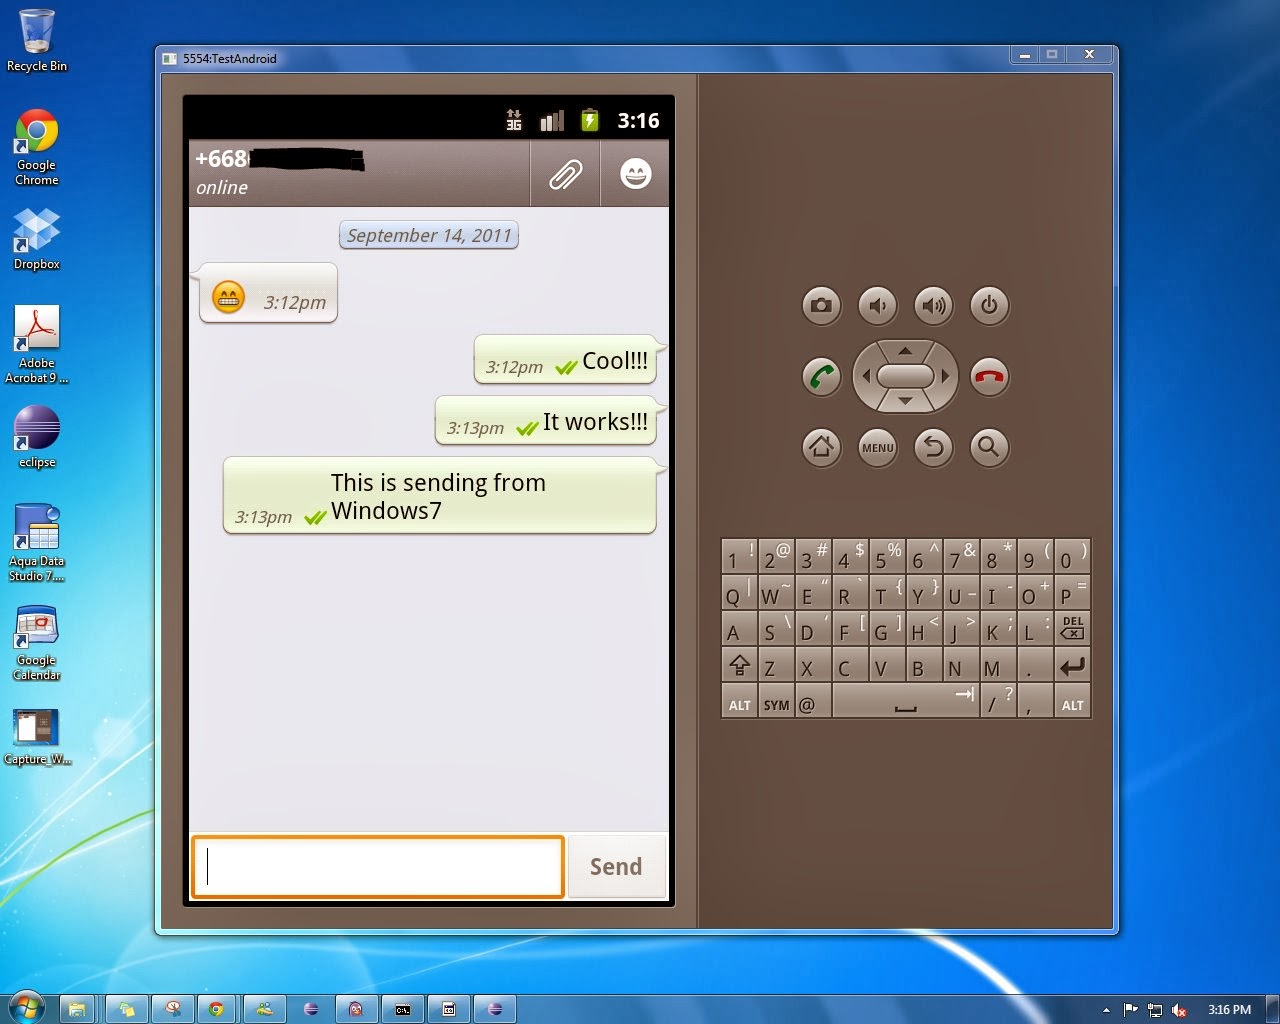 Download Whatsapp for Windows PC and Laptop